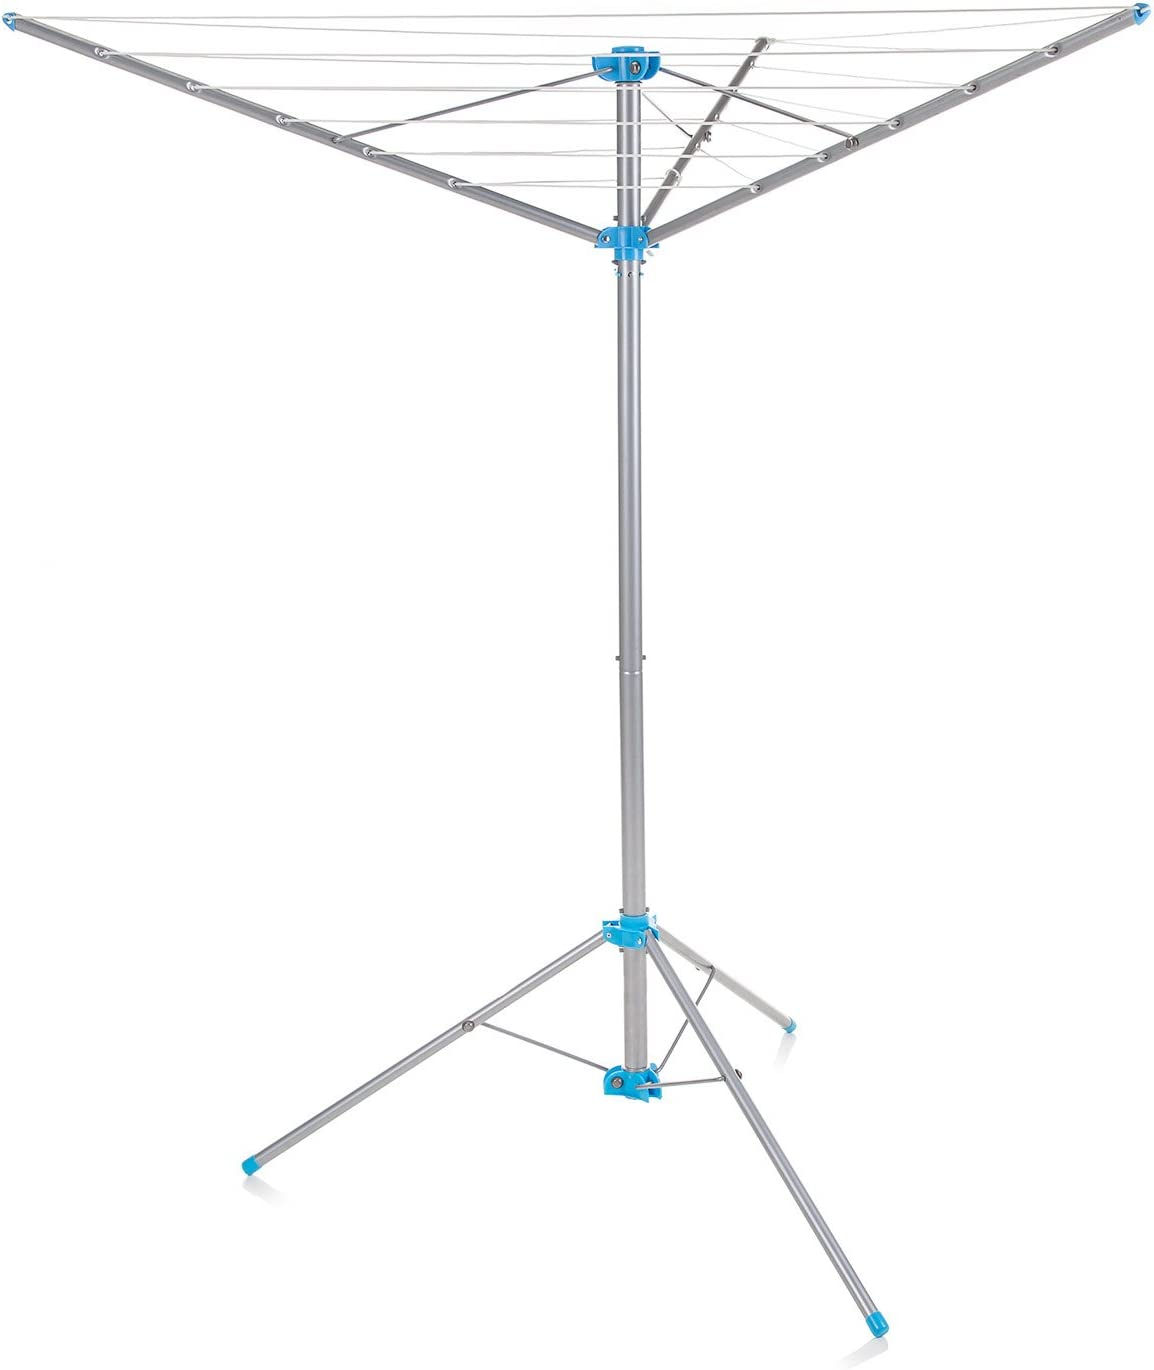 Minky Freestanding Indoor/Outdoor Airer with 15 m Drying Space, Metal, Silver